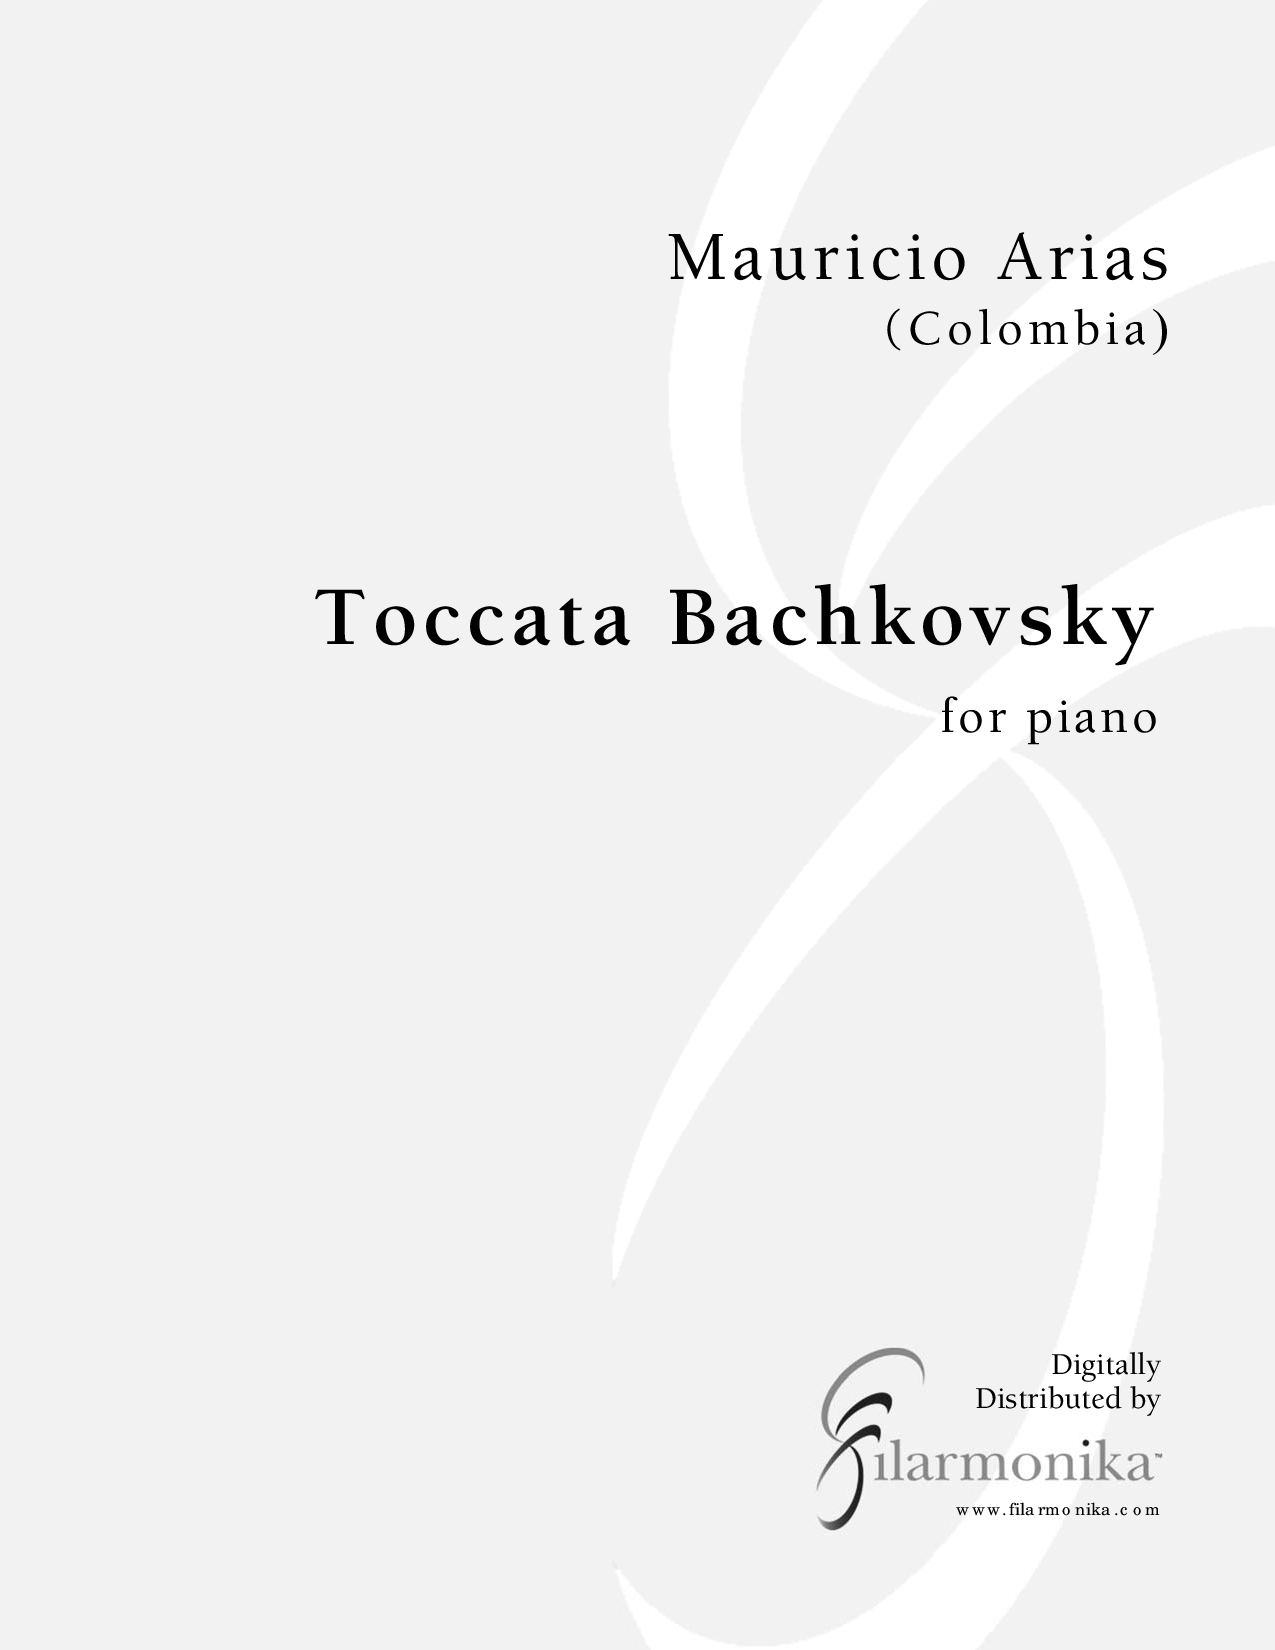 Toccata Bachkovsky, for piano